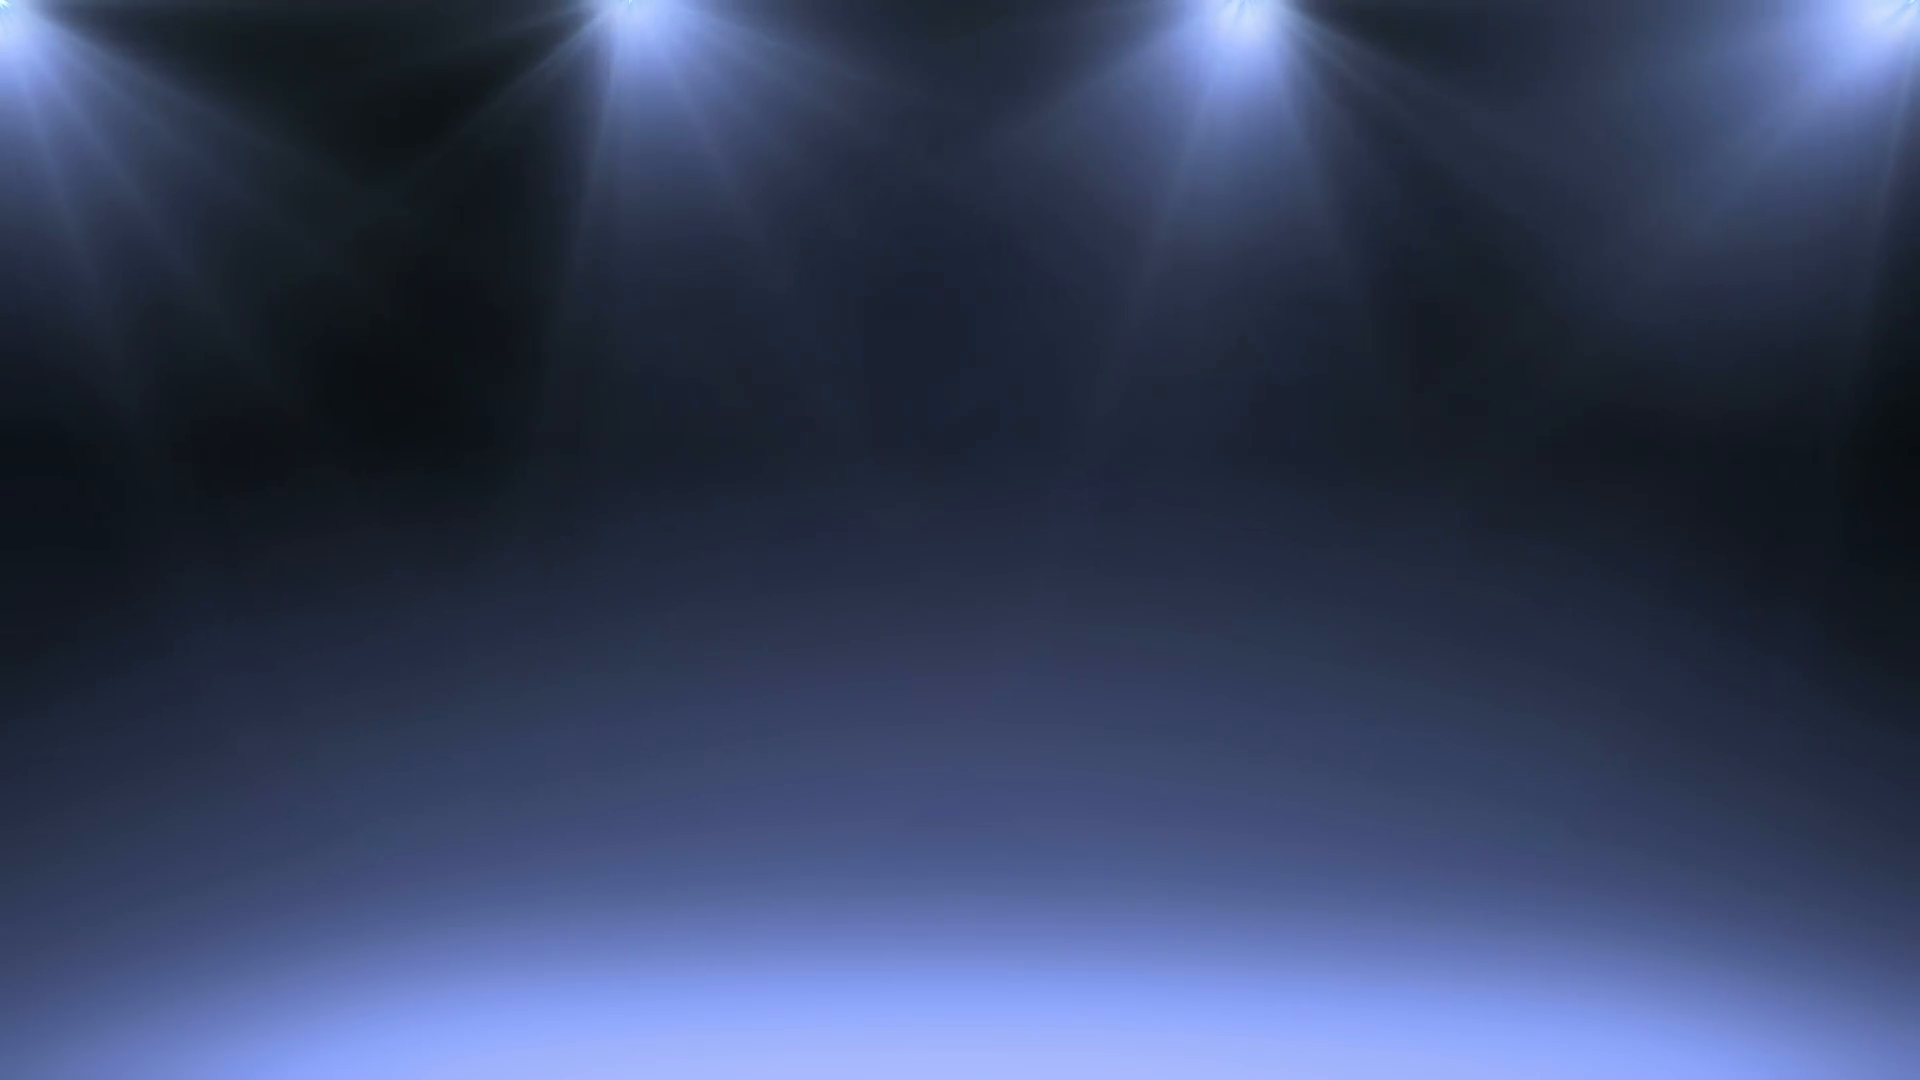 Animated Dark Blue Stage with Spotlights Background. Motion Background.